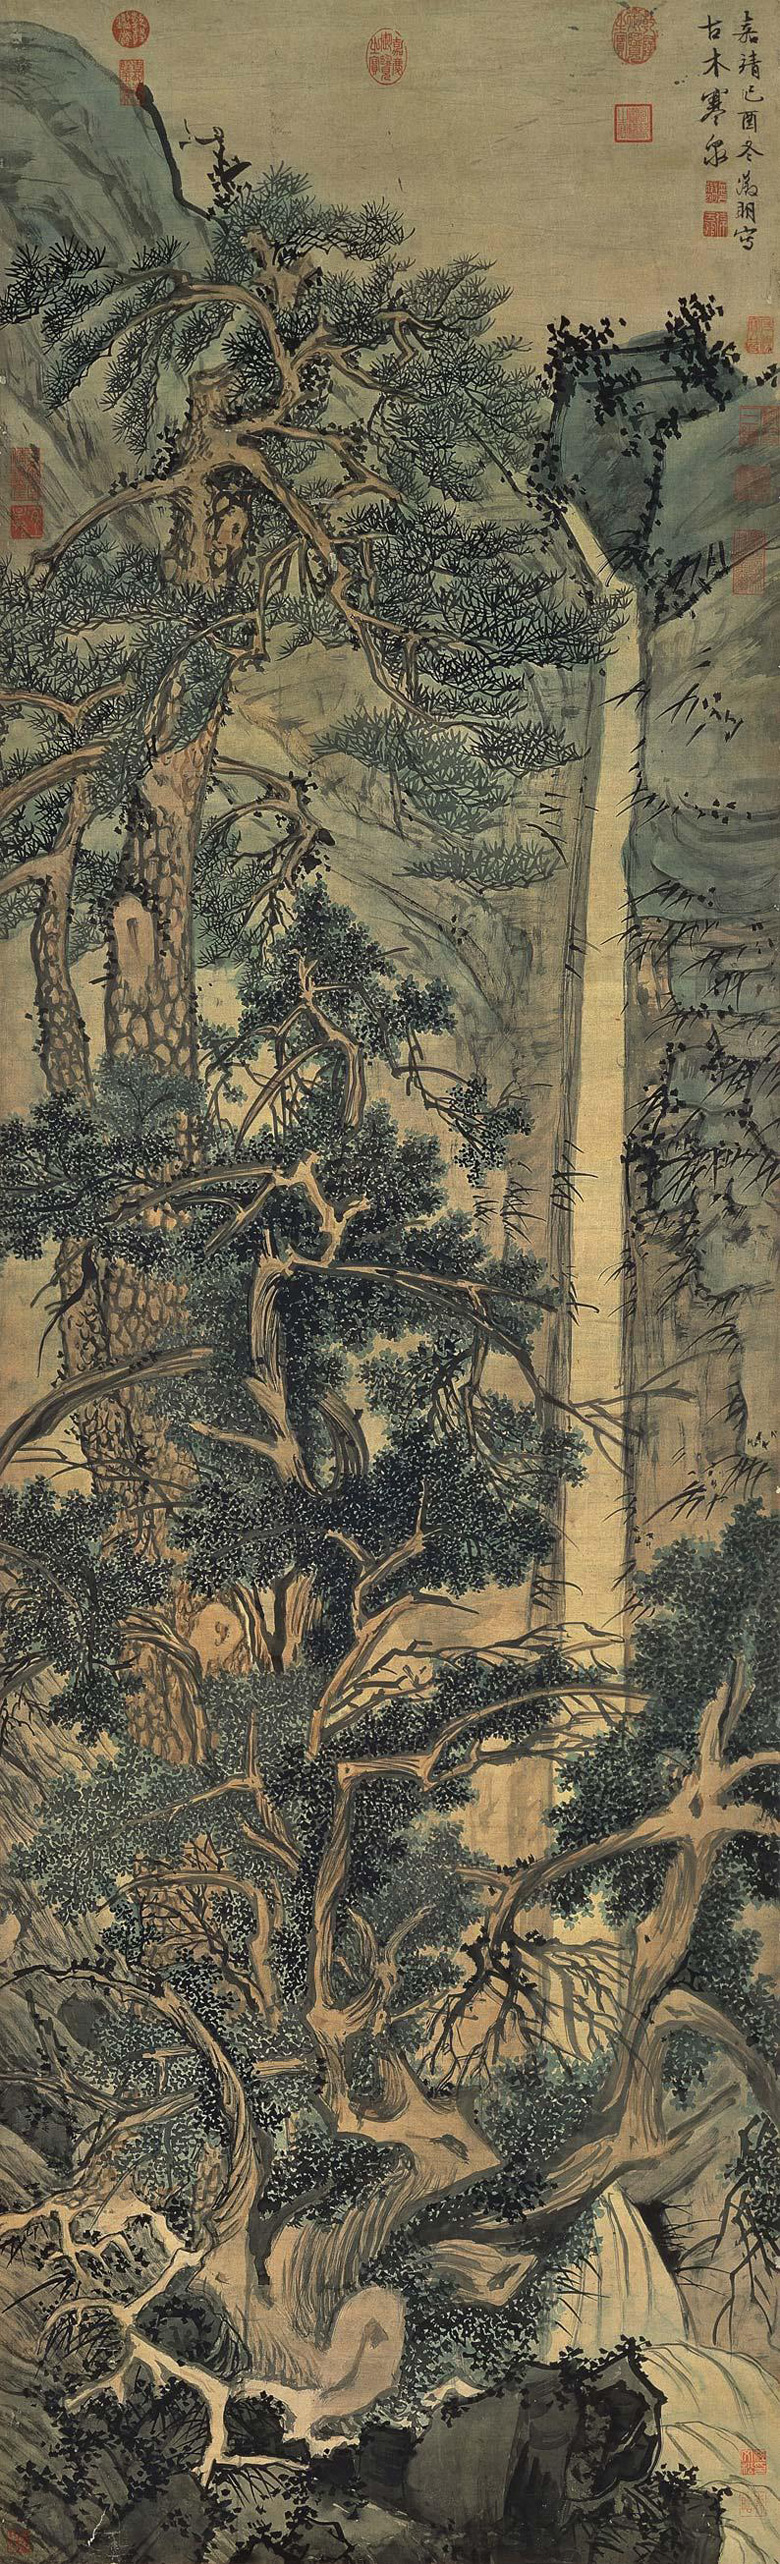 Wen Zhengming painting